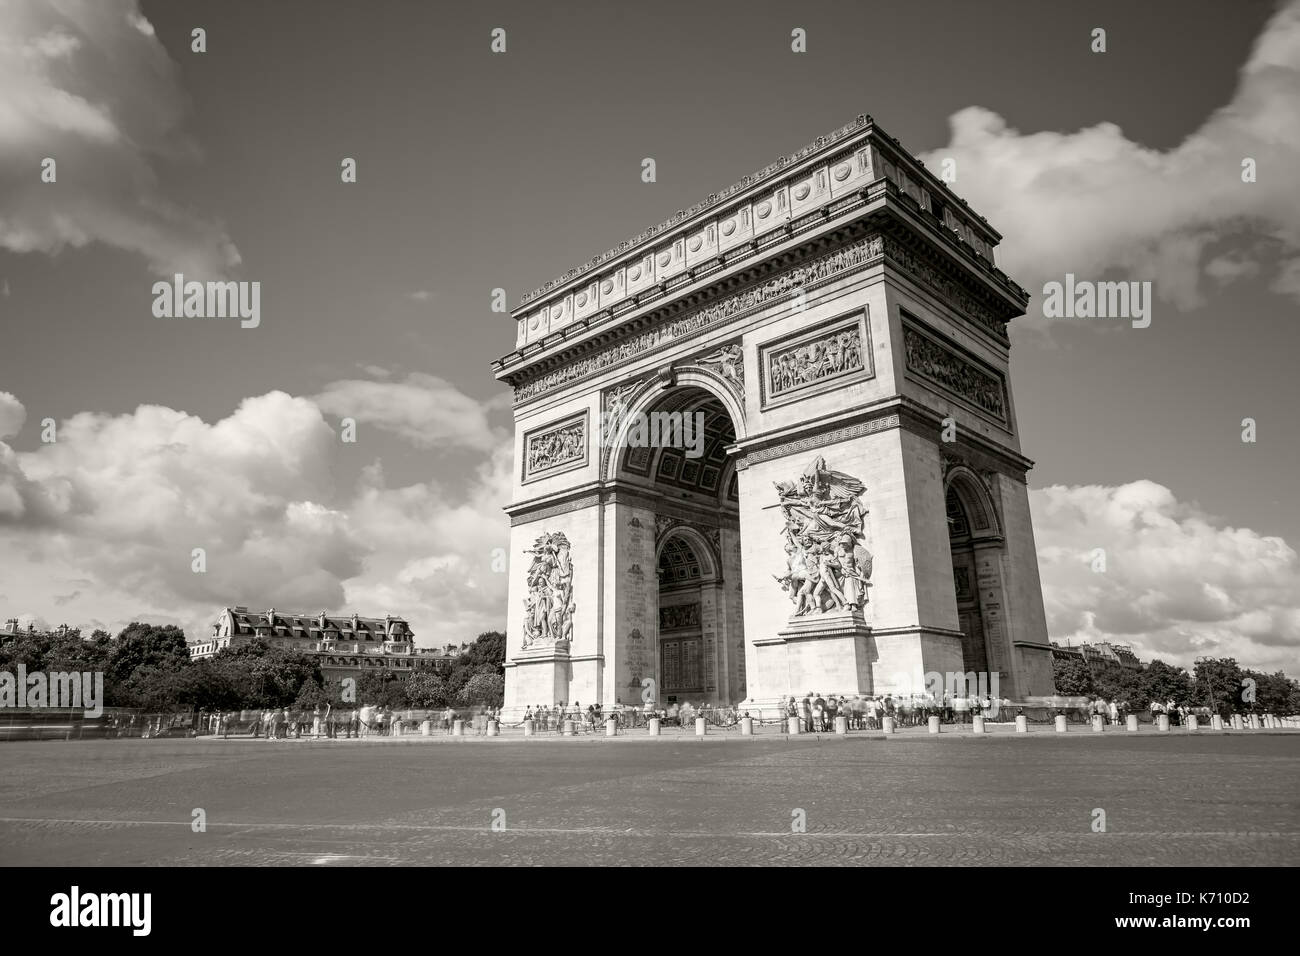 Arc de Triomphe on the Champs Elysees - Stock Image